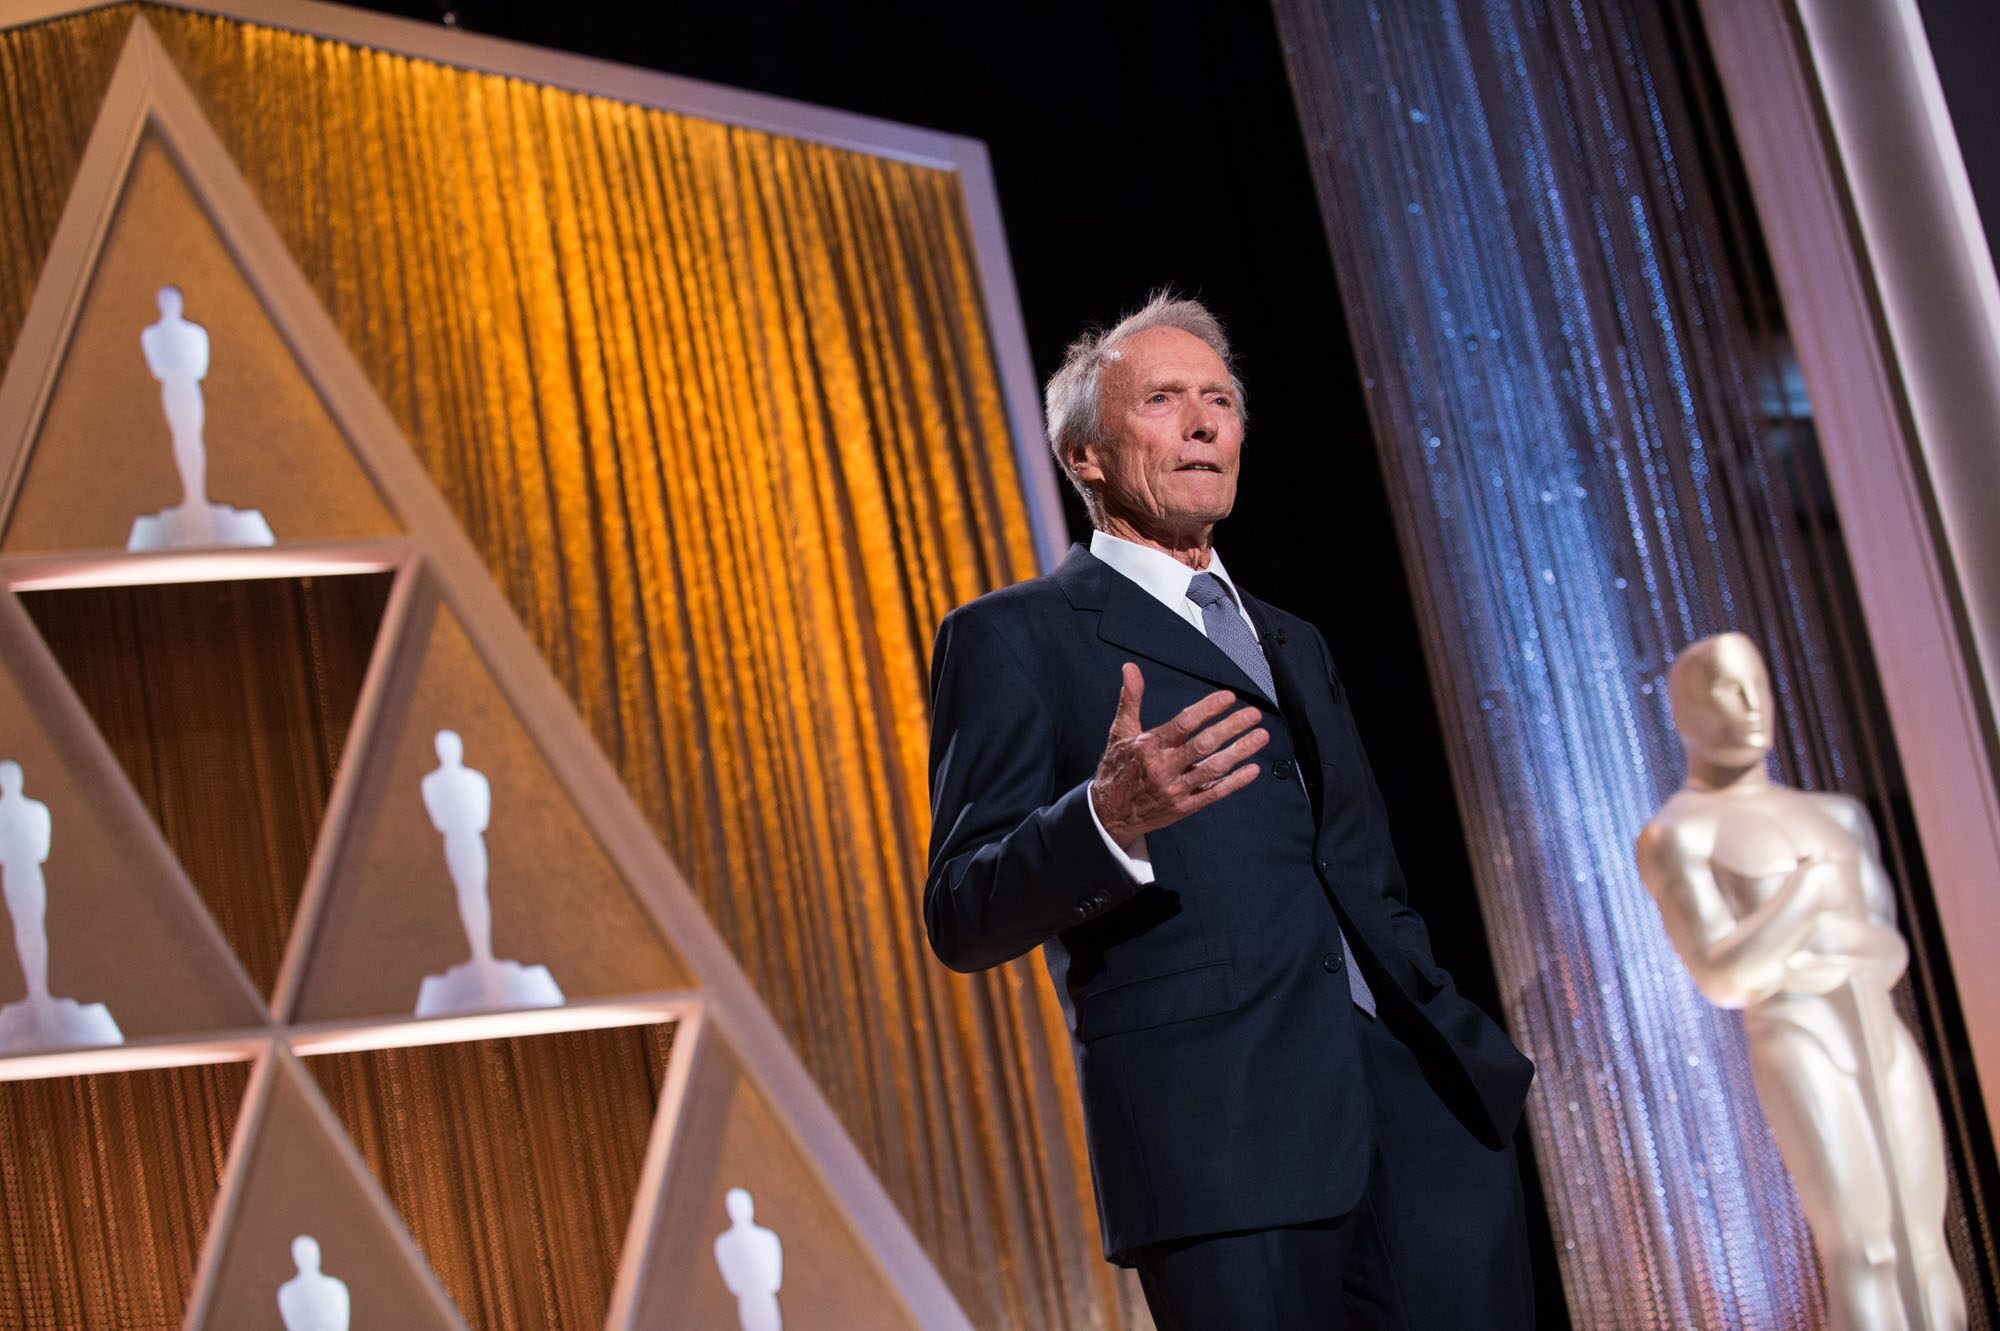 Oscar®-winning actor/director Clint Eastwood speaks as part of the award presentation to Honorary Award recipient Maureen O'Hara during the 2014 Governors Awards